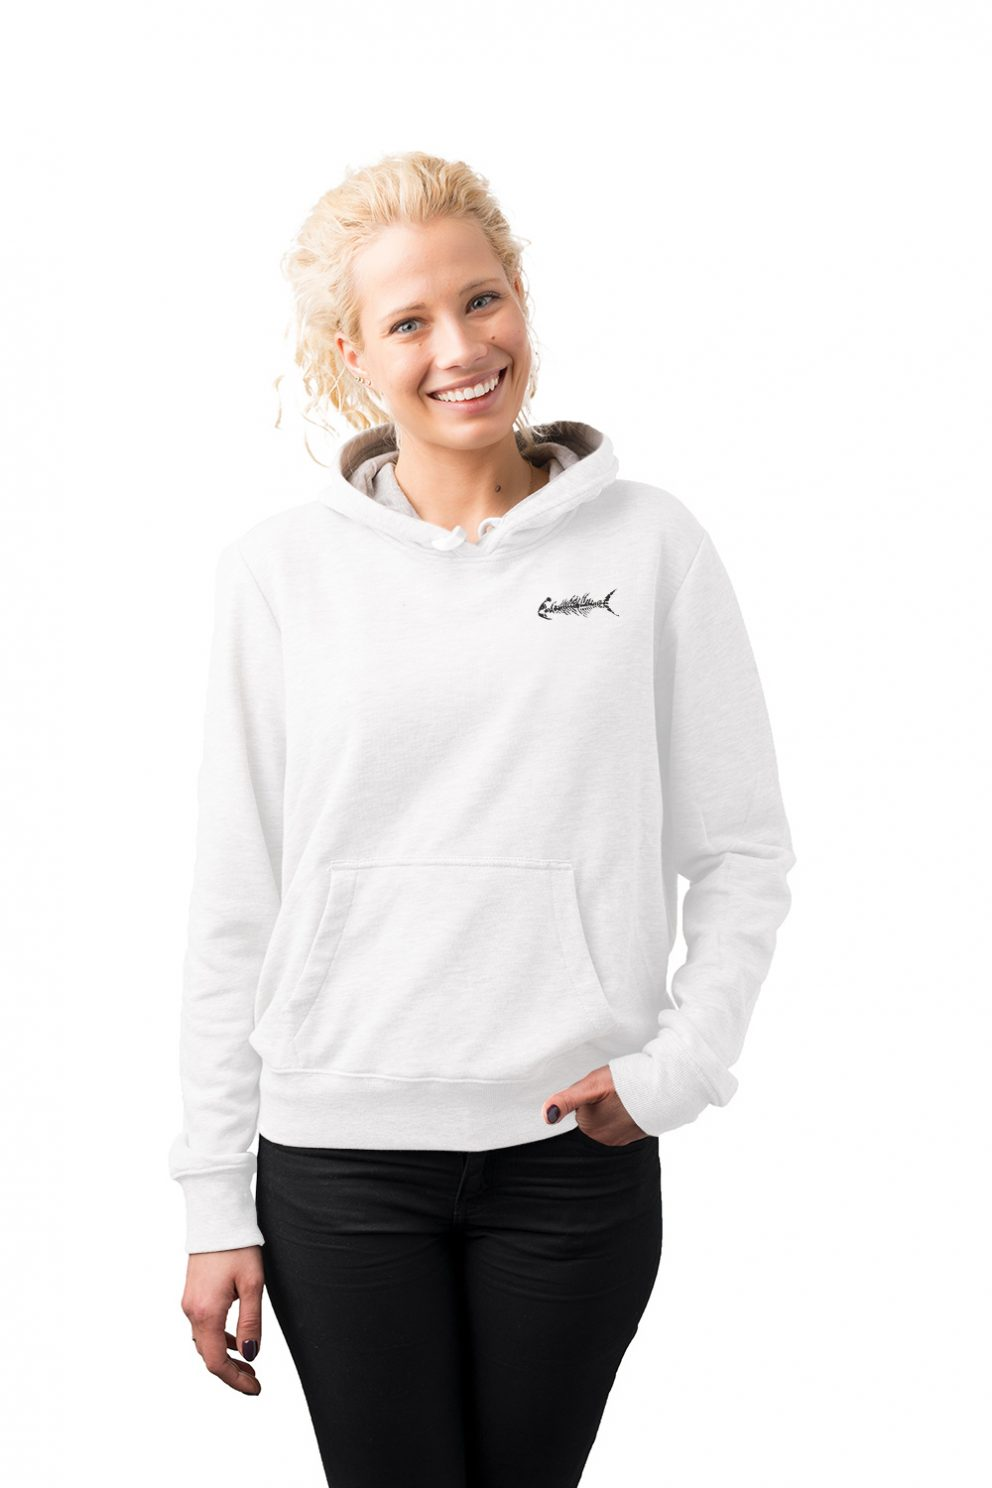 Kyst-shirt Rost Hoodie